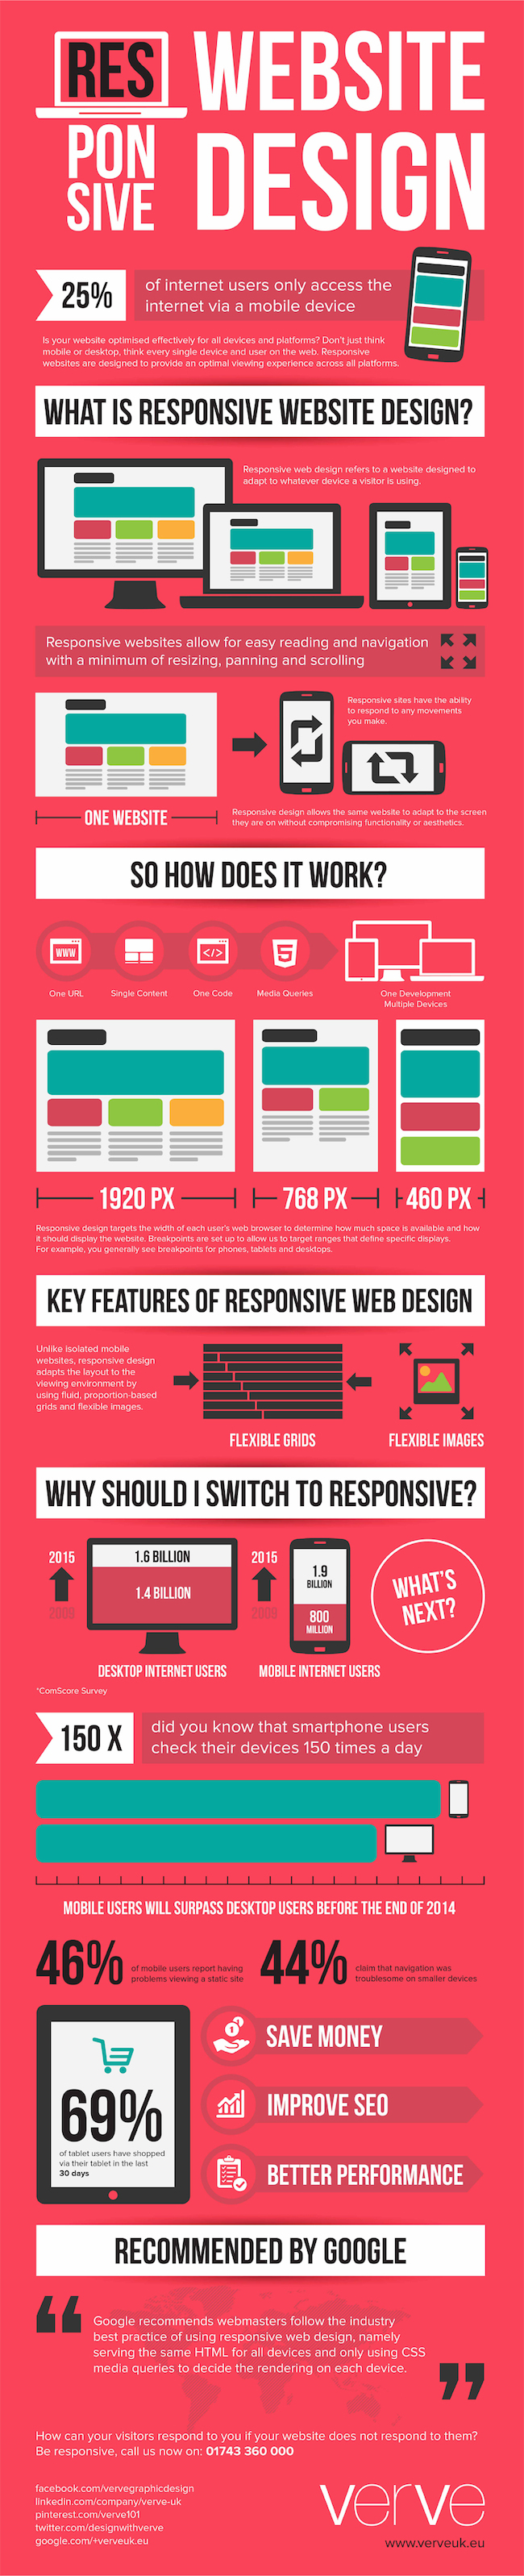 what-is-responsive-website-design-ig